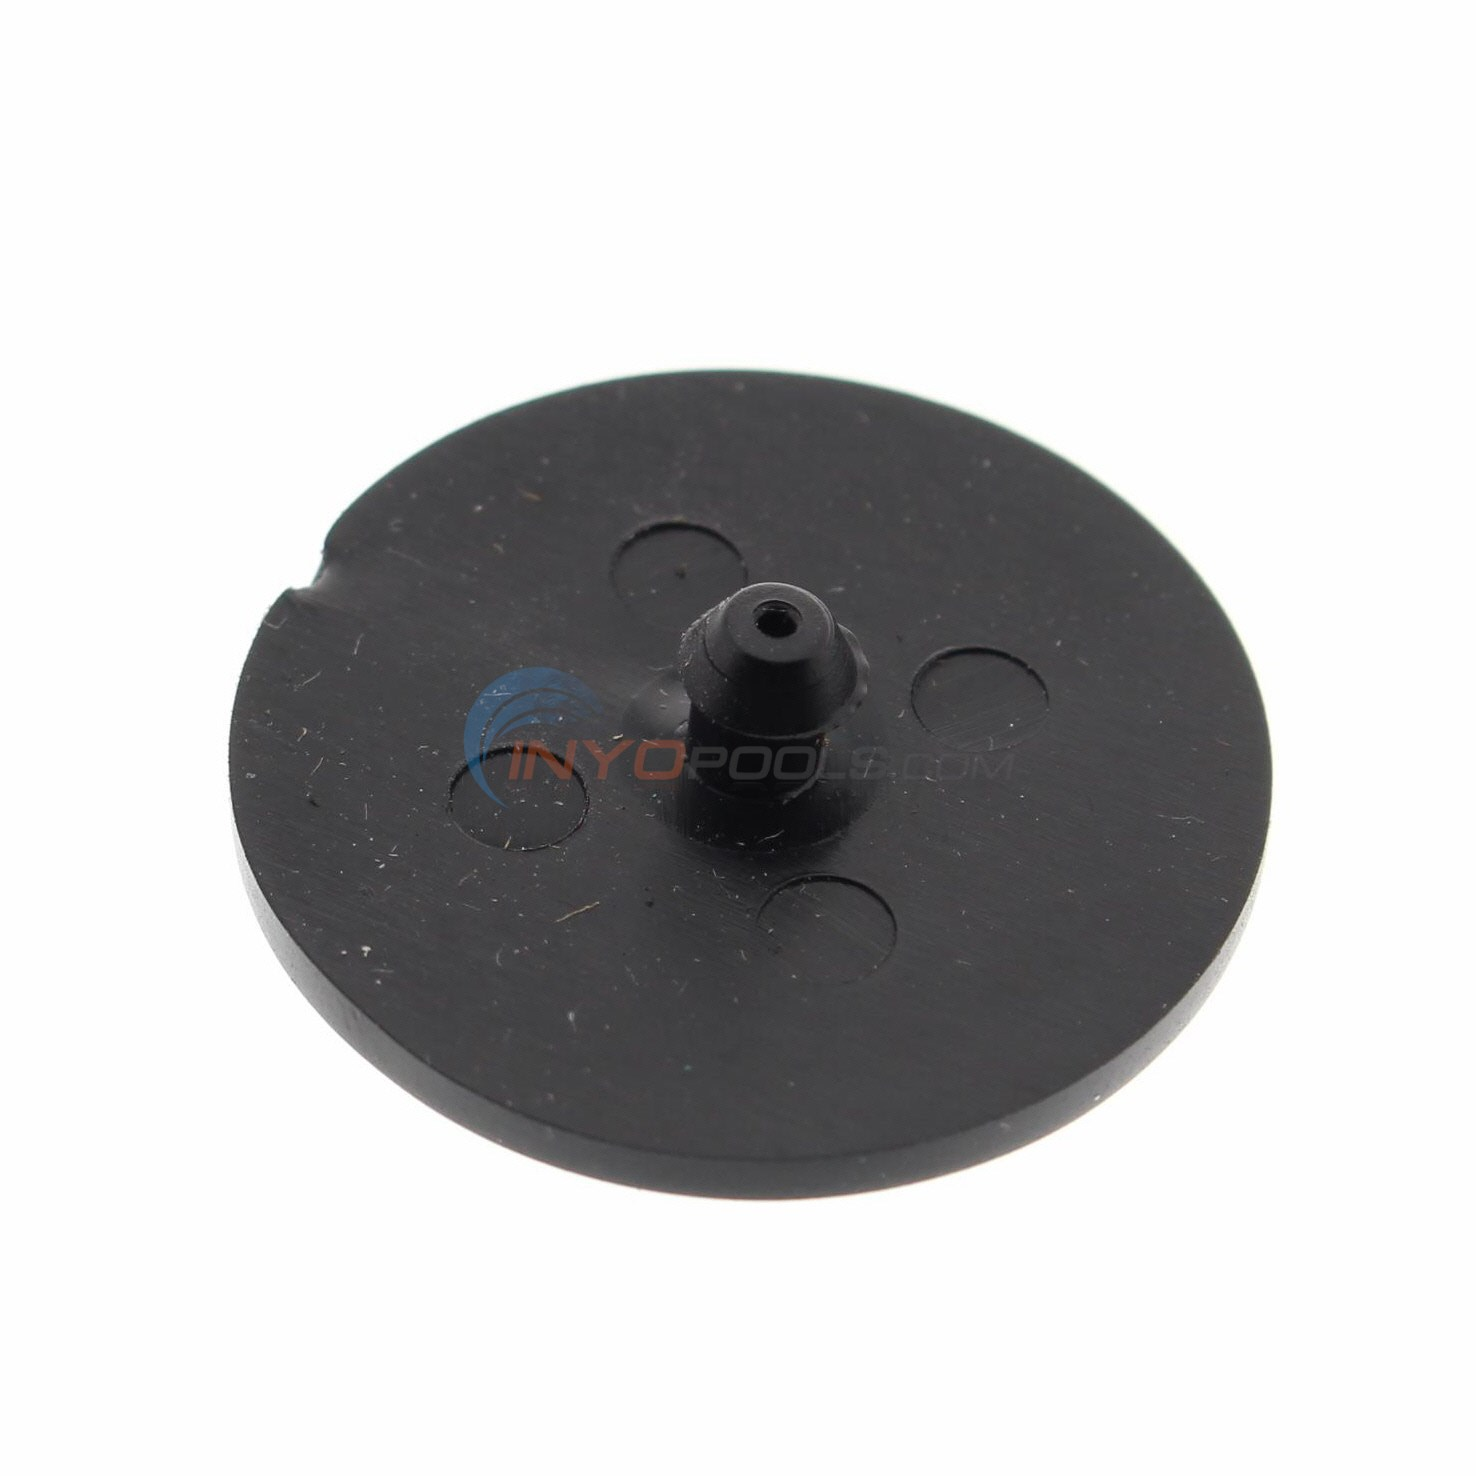 Maytronics Diag.basic - Non Return Diaphragm (9980220)